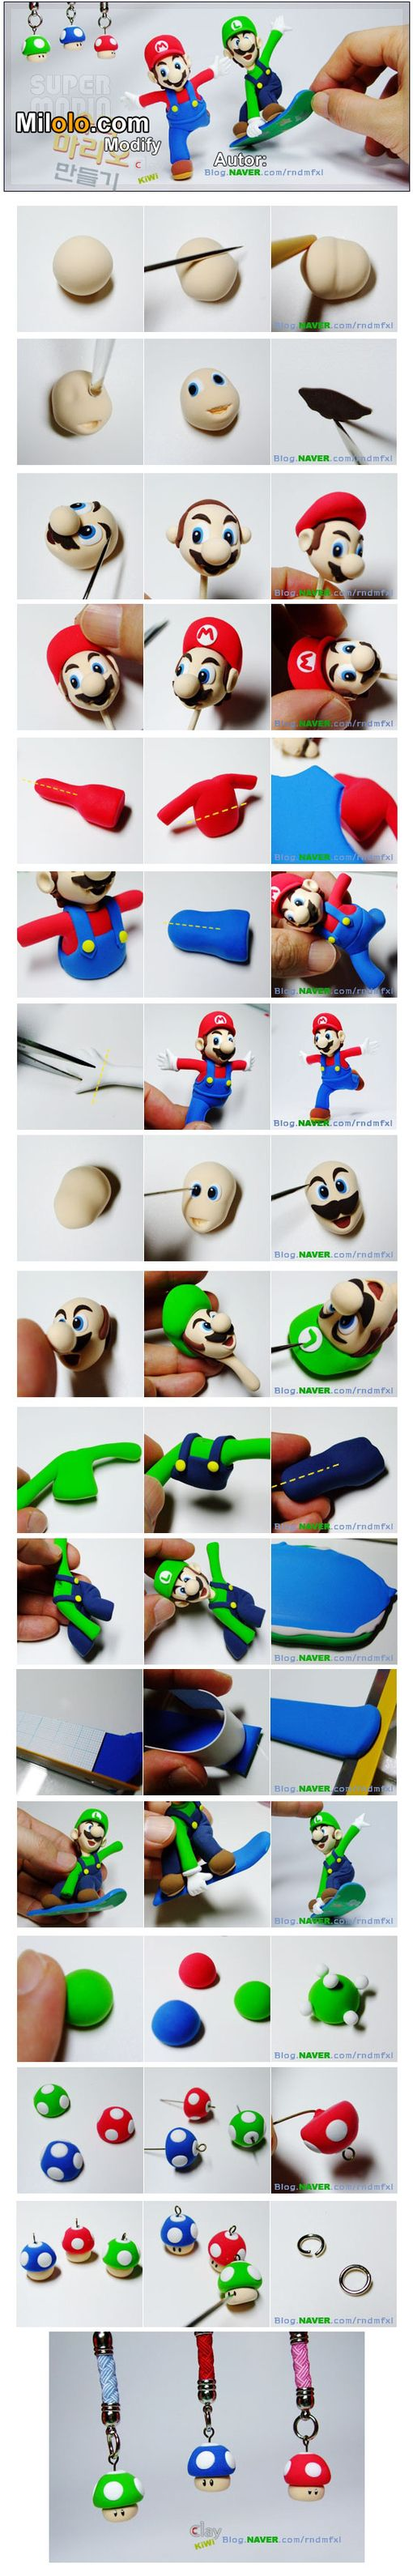 The mushroom one is the one I'm interested in